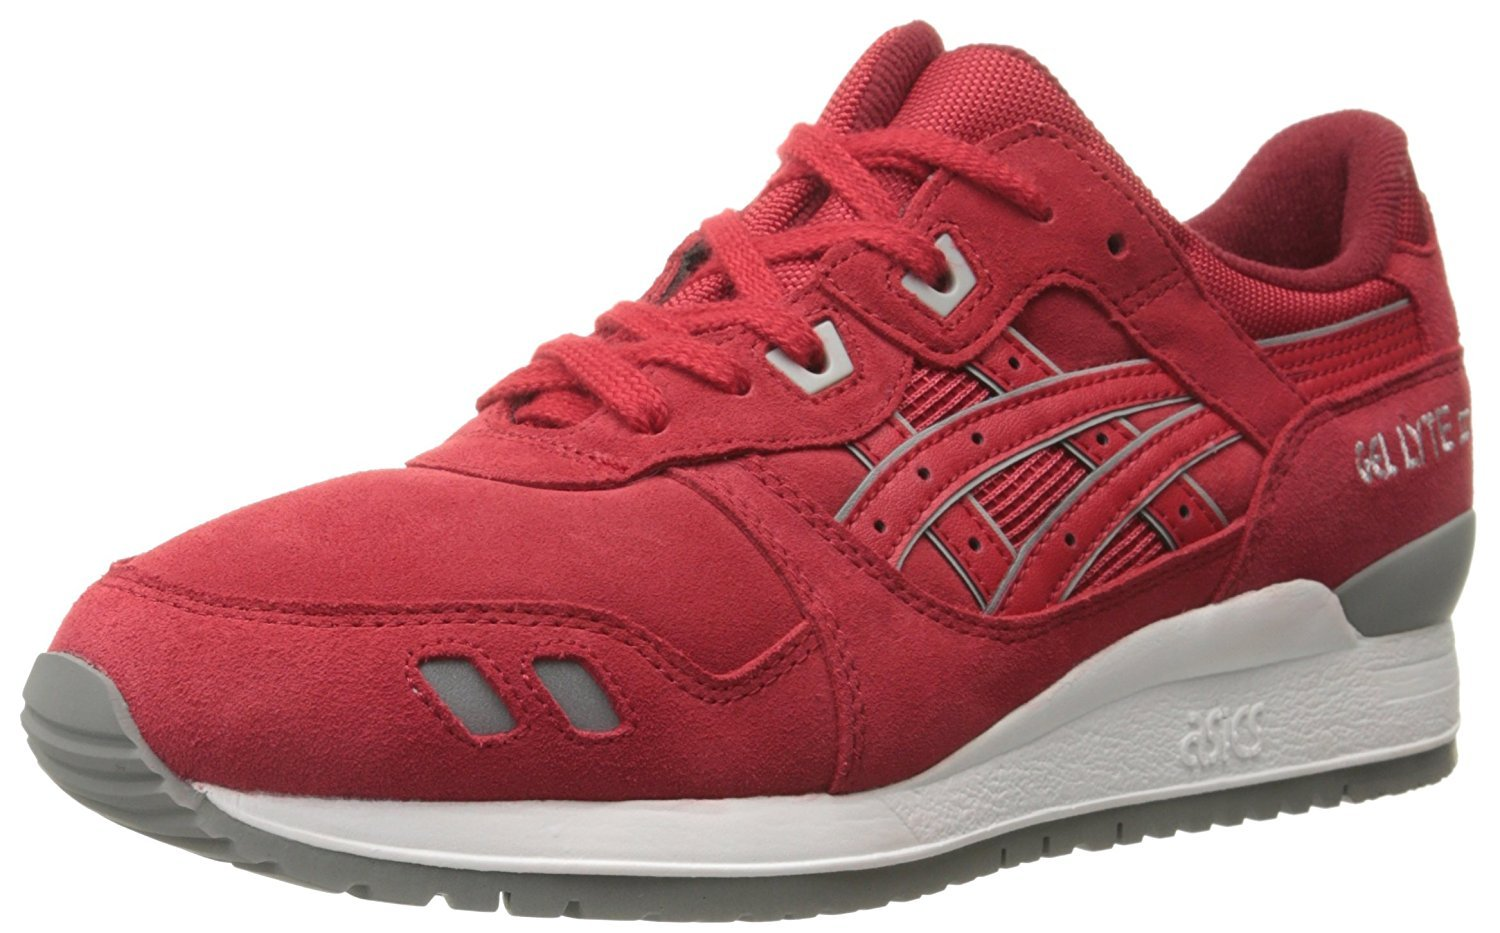 ASICS Men's GEL-Lyte III Retro Sneaker B072J67NJQ 12 D(M) US / 46-47 EUR|Red / Red